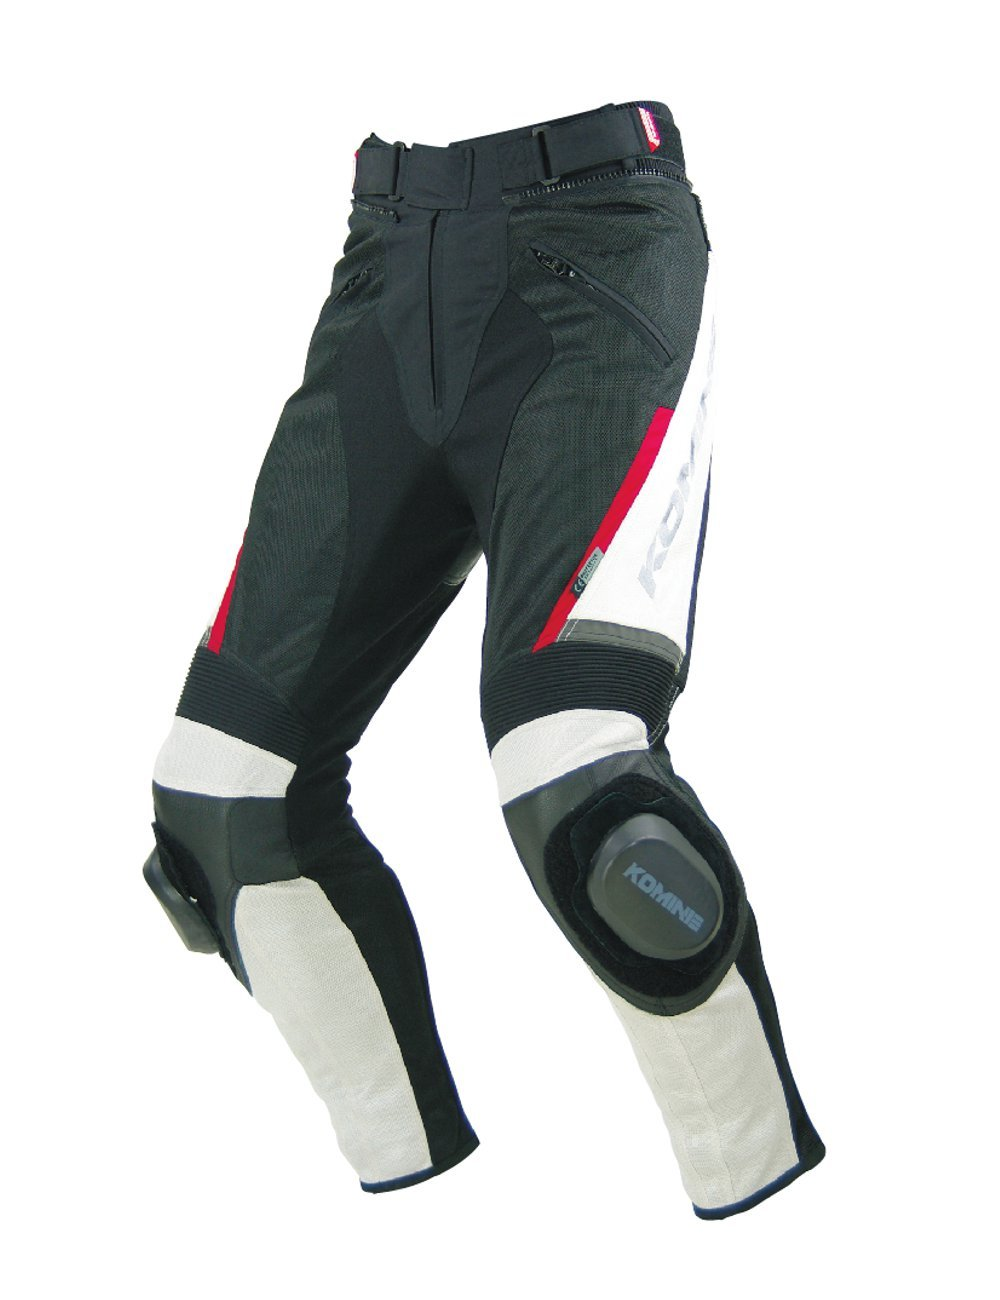 Komine PK-717 Sports Riding Leather M-PNT ivory / black S 07-717